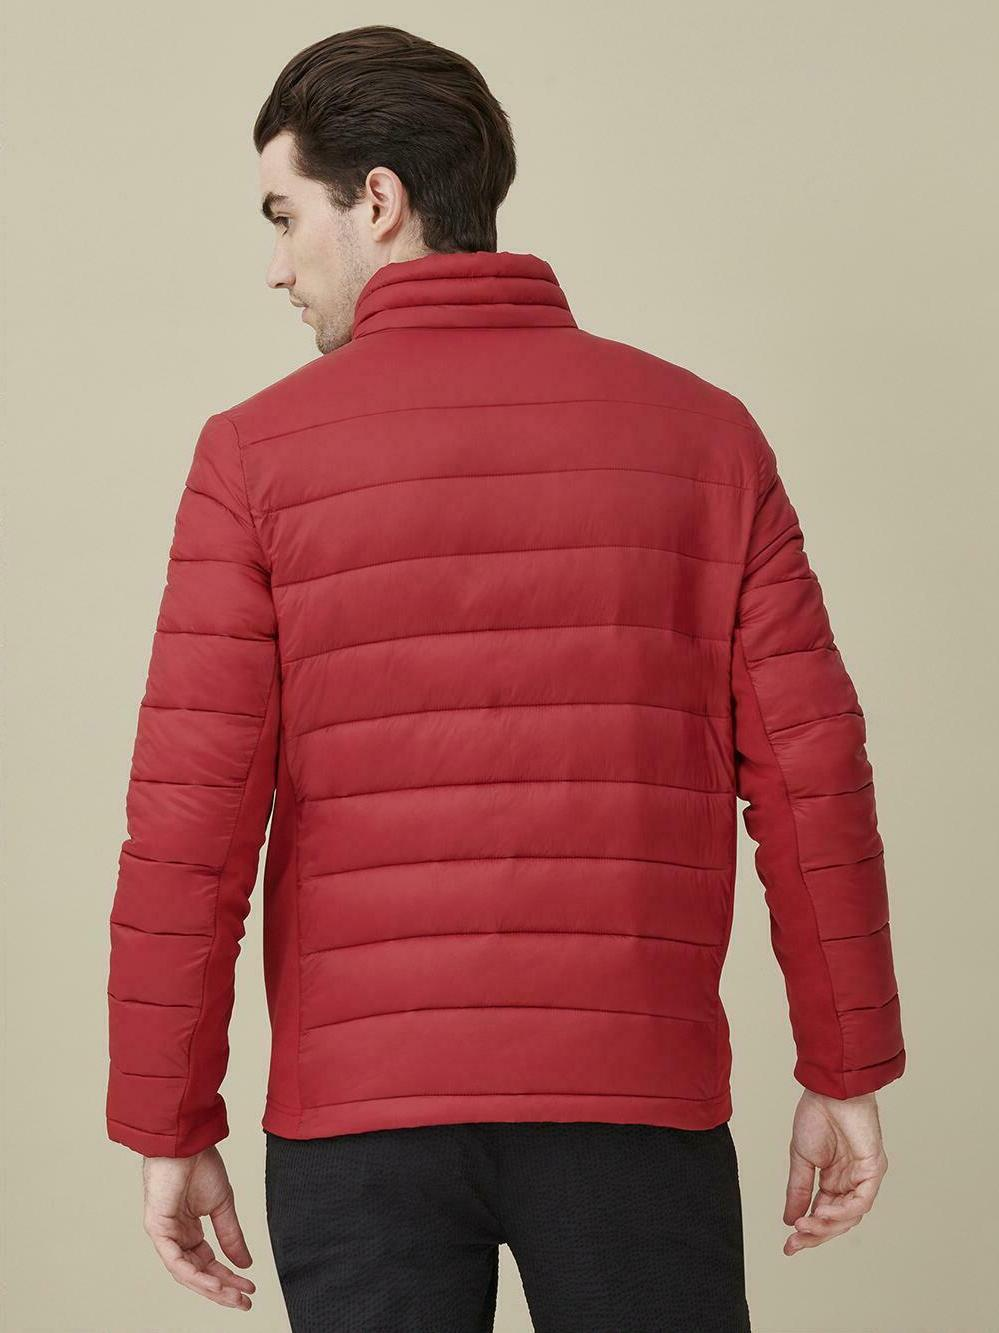 GUESS Men's Stand Nylon Puffer Jacket - NEW